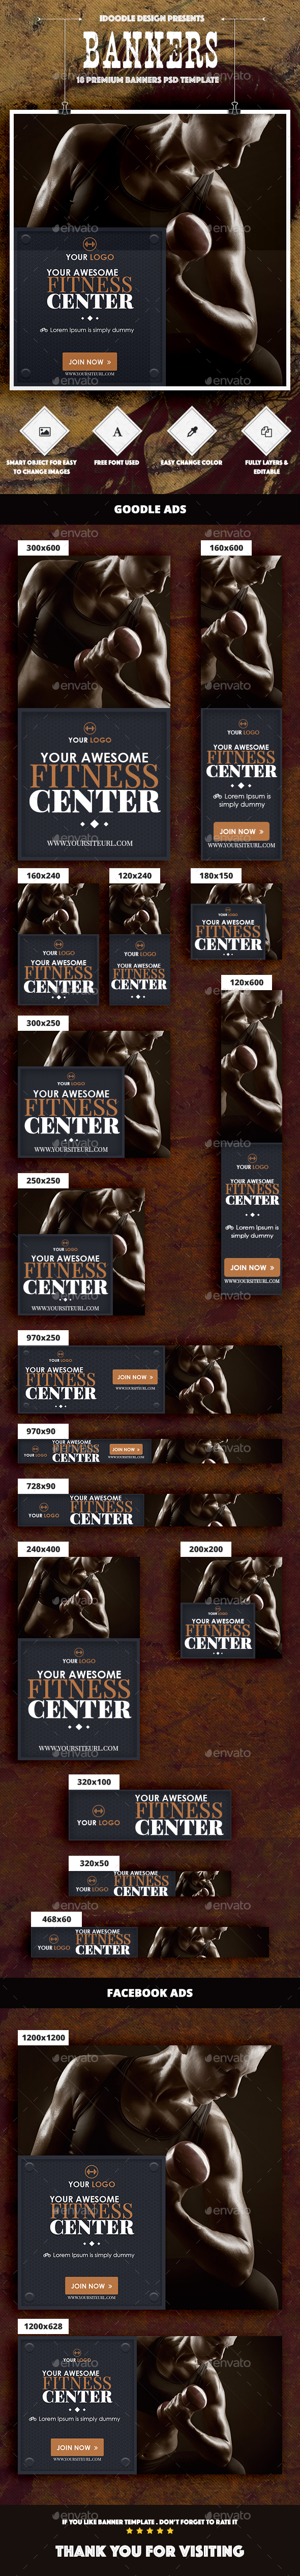 Gym & Fitness Banners Ad - Banners & Ads Web Elements